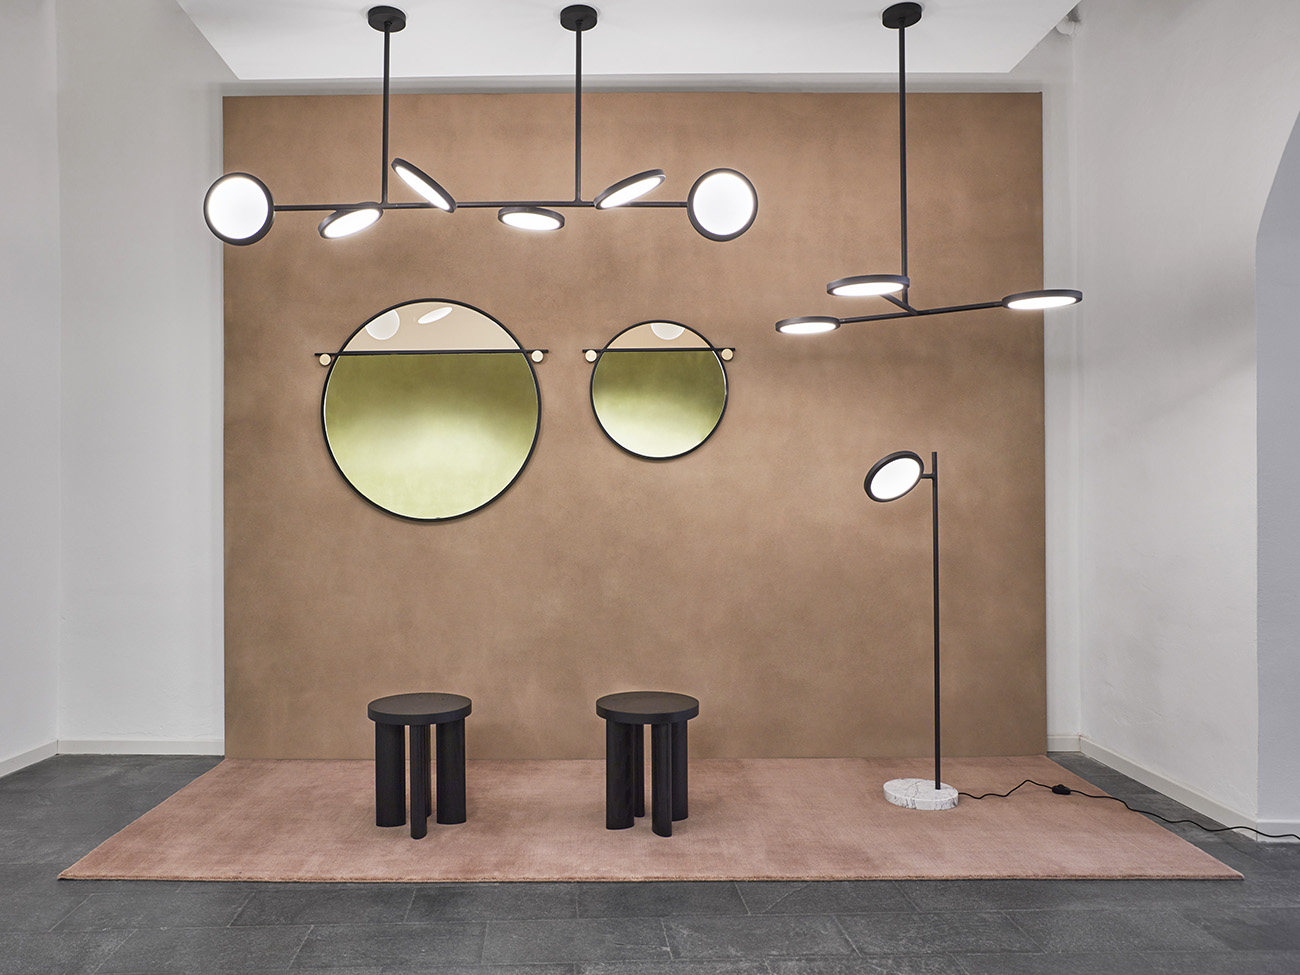 Matter-Made-Discus-Lights-Abal-Mirrors-Orbit-Stools.jpg